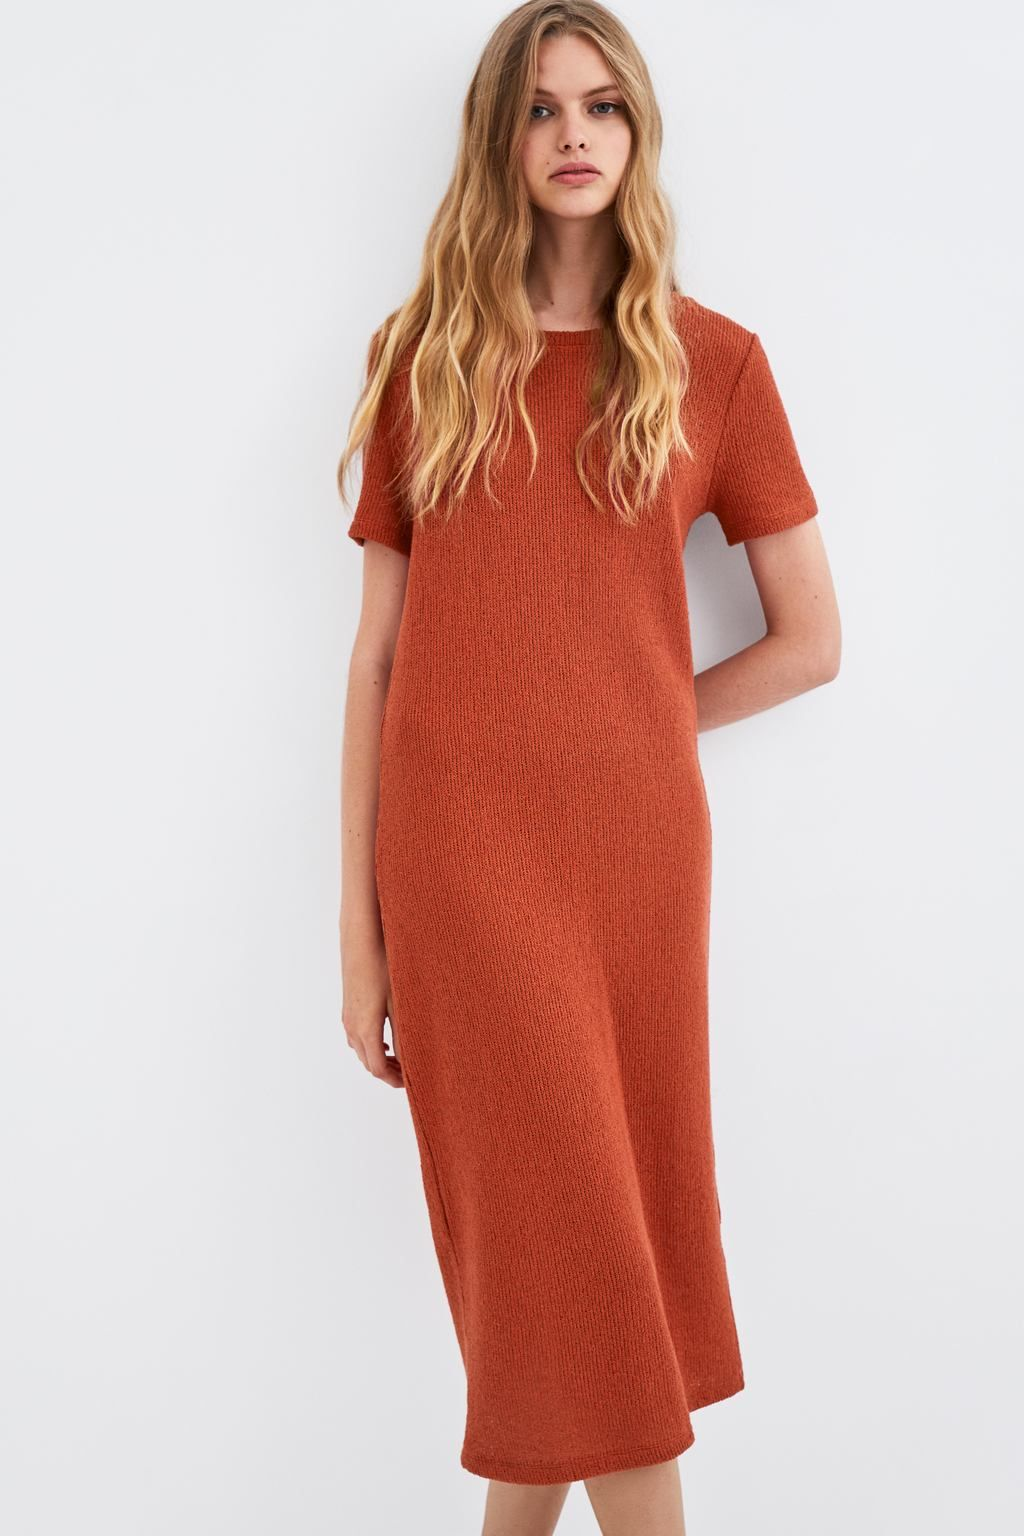 3789df82e The Autumnal Colour Trend To Buy Now